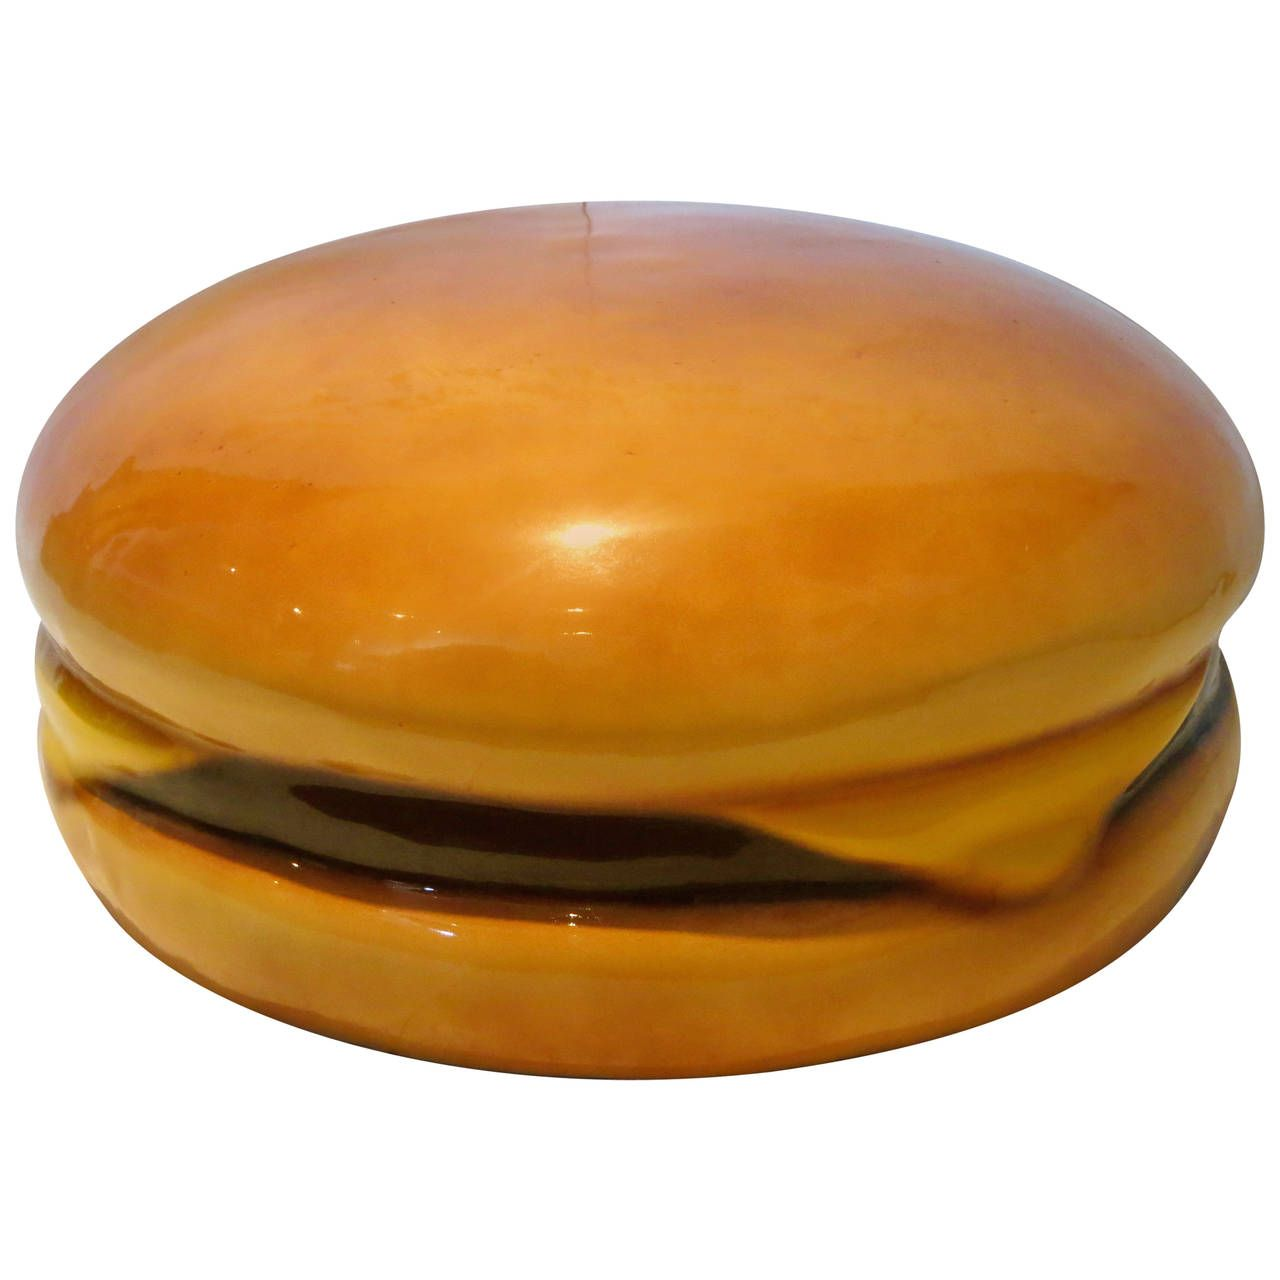 Giant Cheeseburger Molded Foam Fake Food Prop Display Pop Art | See more antique and modern Sculptures at https://www.1stdibs.com/furniture/decorative-objects/sculptures